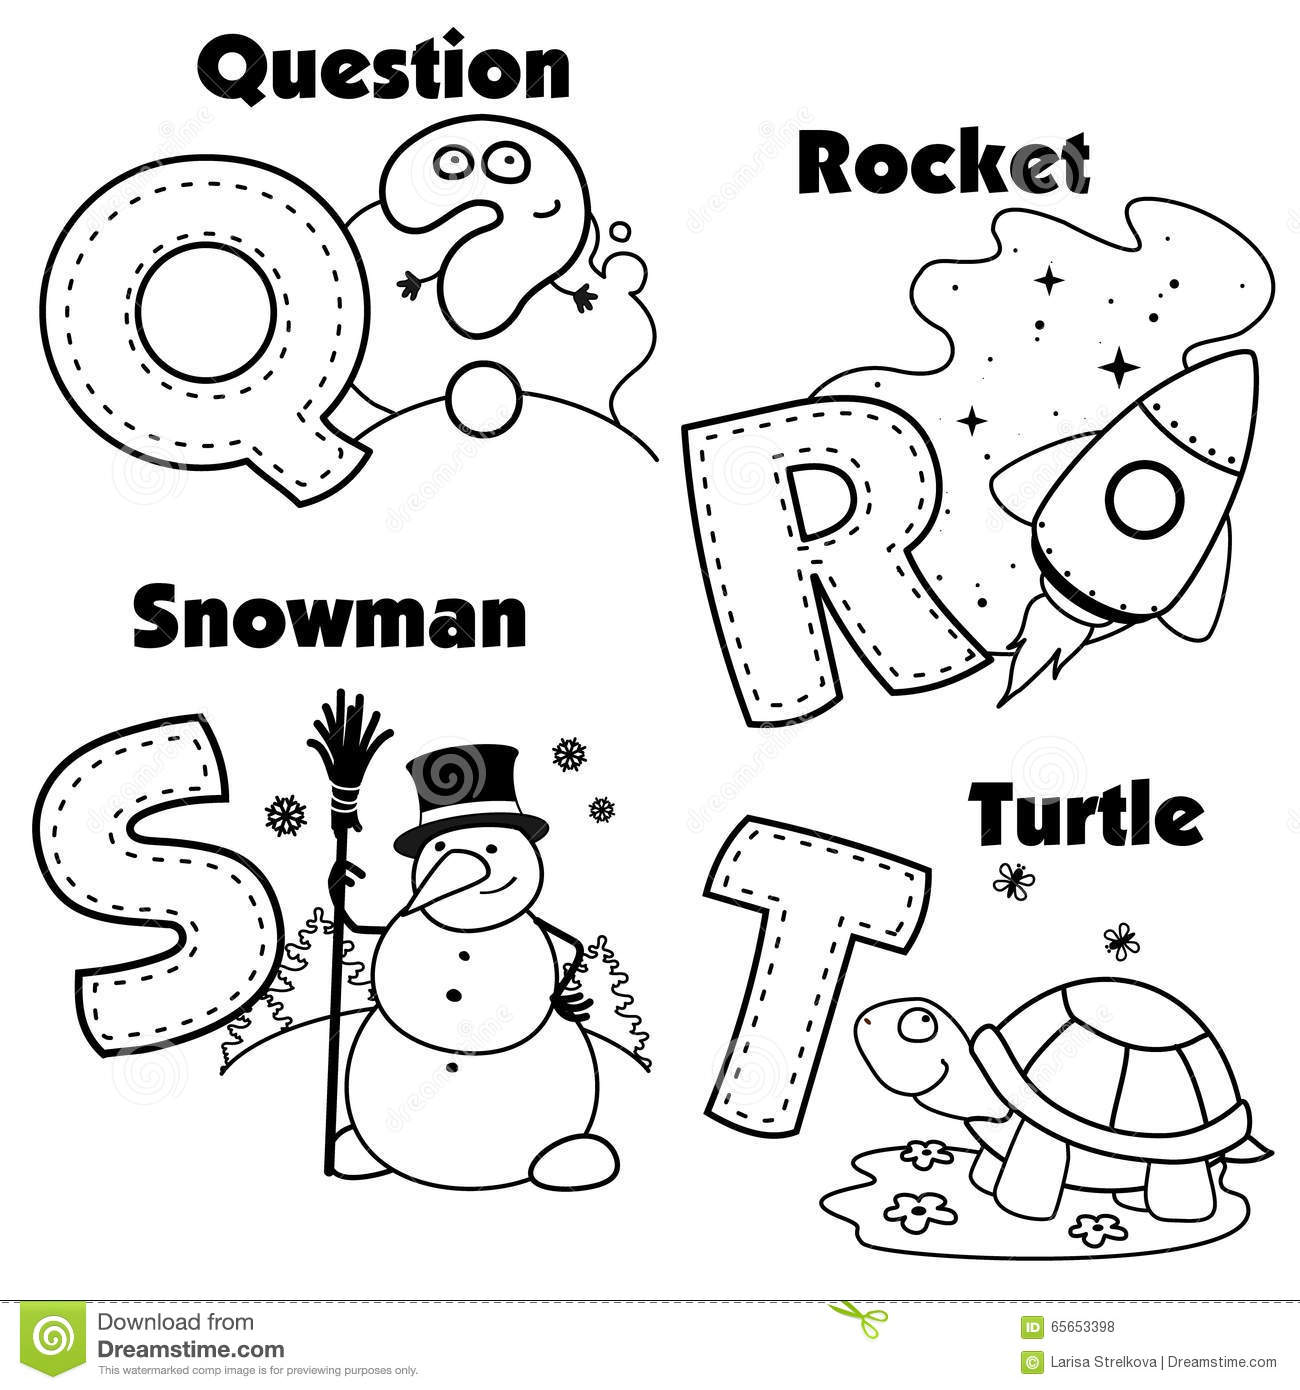 English Alphabet Coloring Pages : English alphabet and the letters q r s t stock